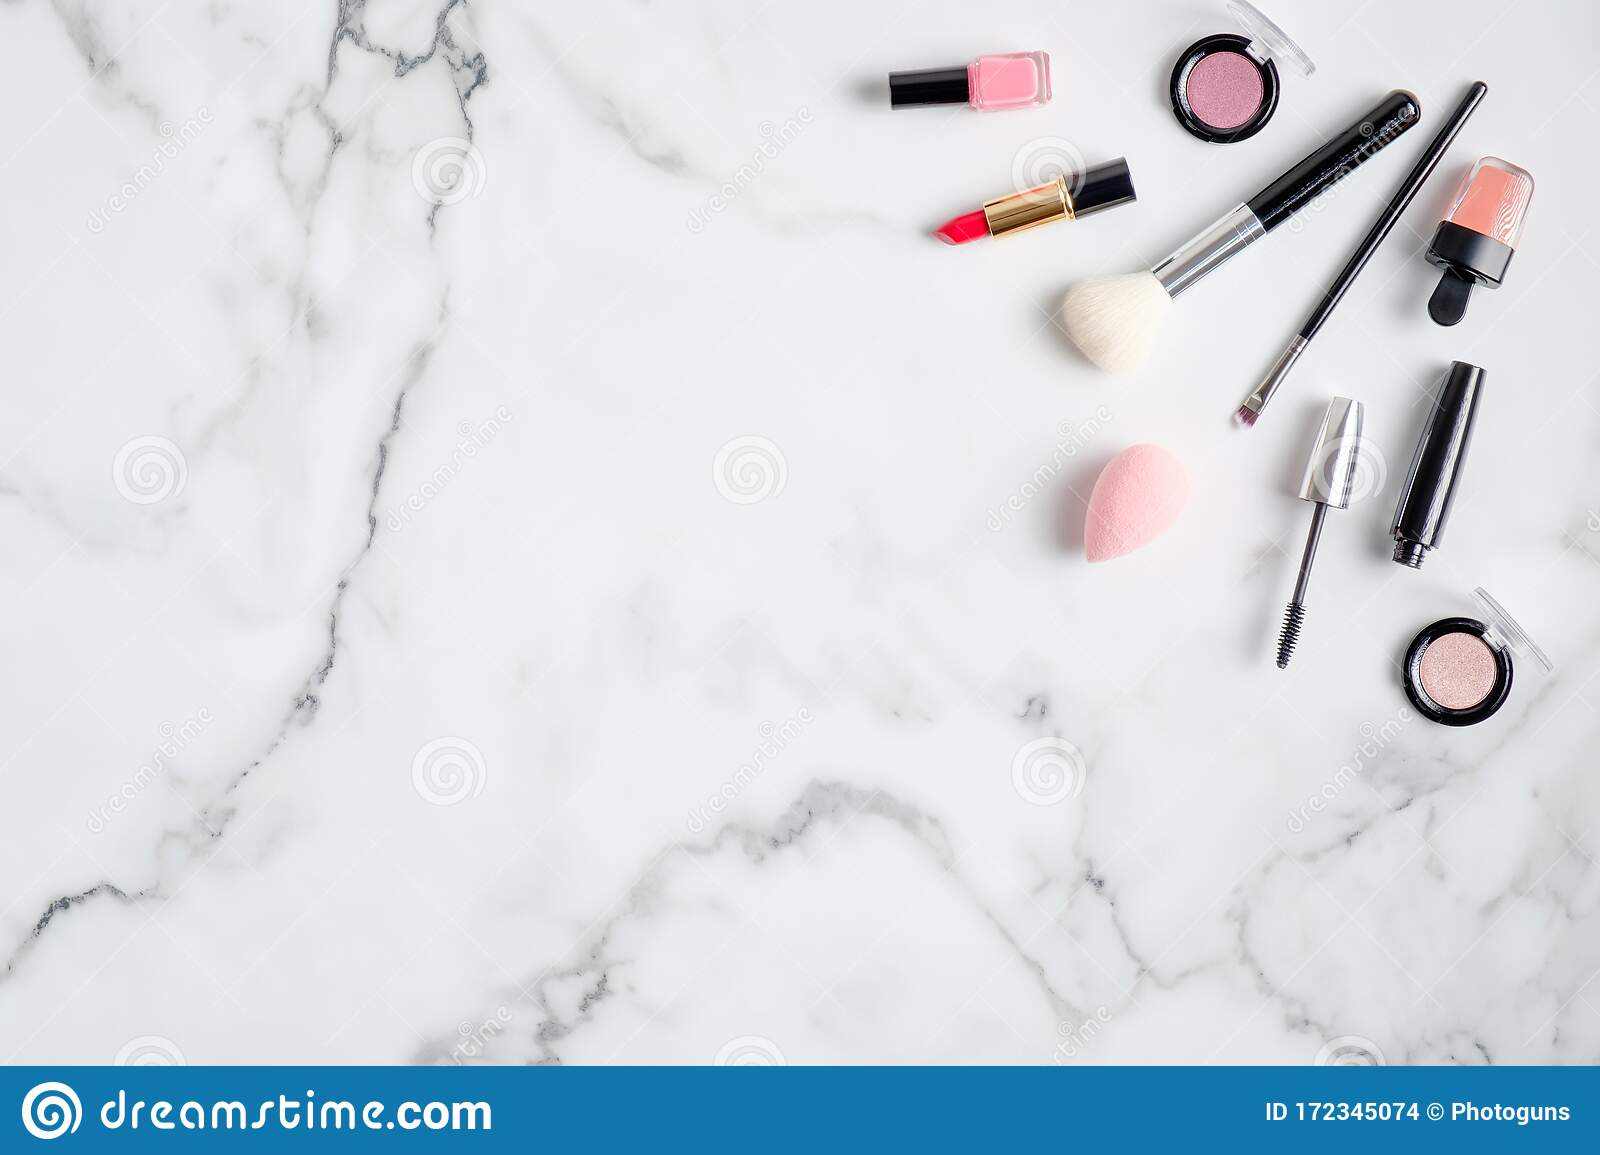 Makeup Cosmetics And Professional Beauty Products On Marble Background Flat Lay View From Above Beauty Salon Banner Design Stock Photo Image Of Banner Lipstick 172345074